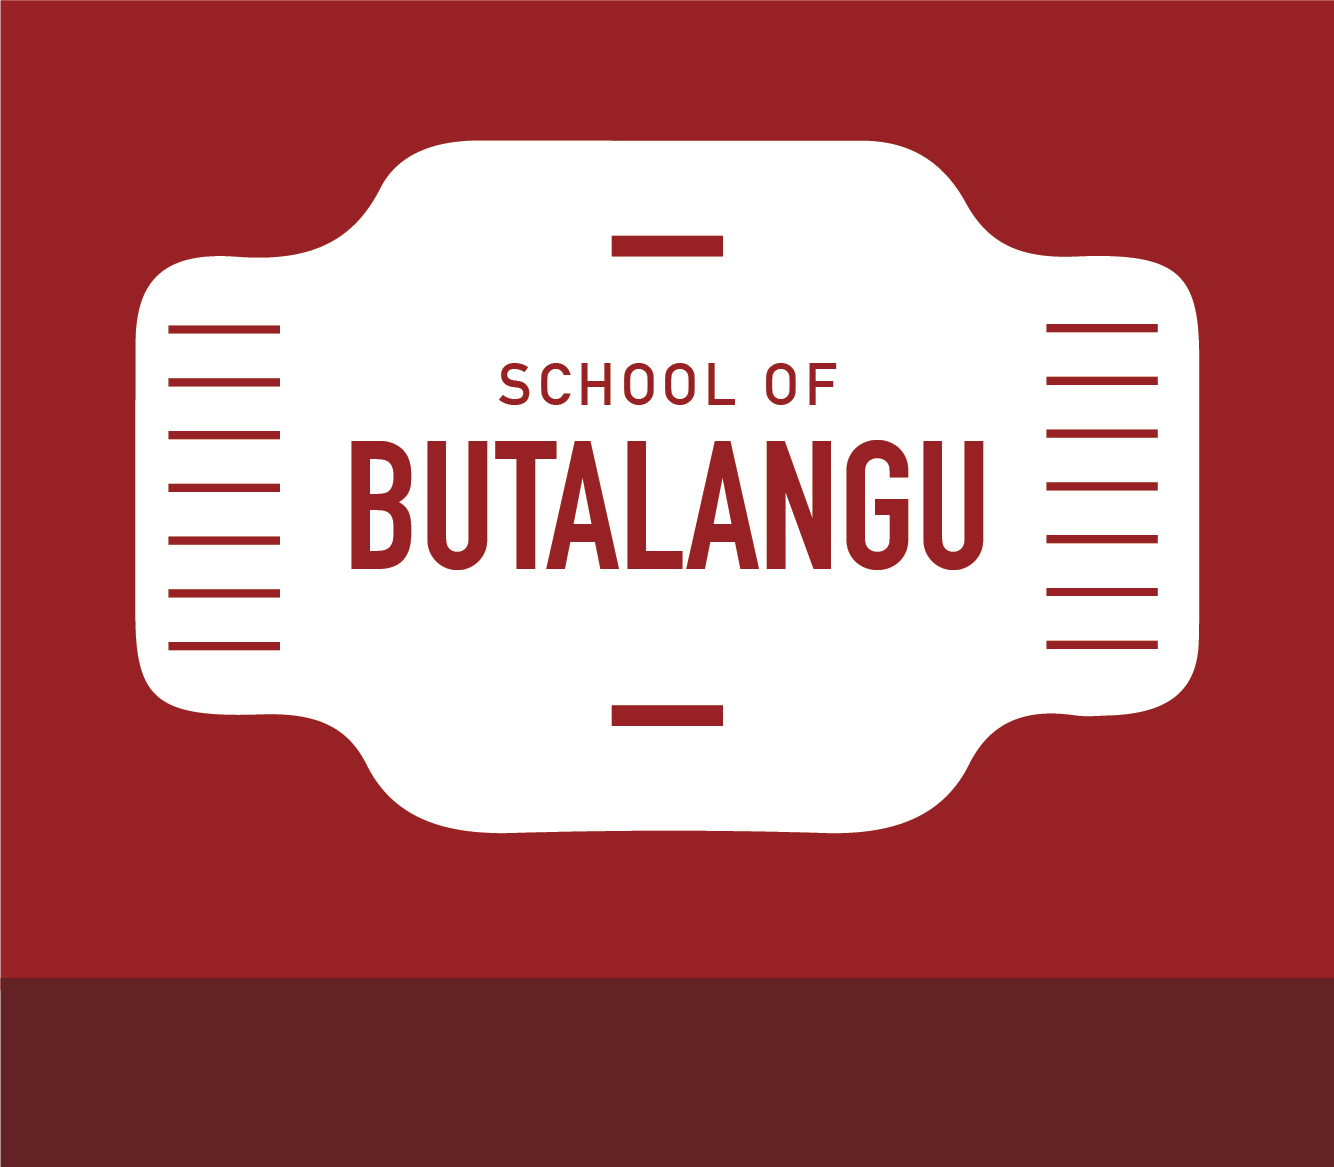 School of butalangu